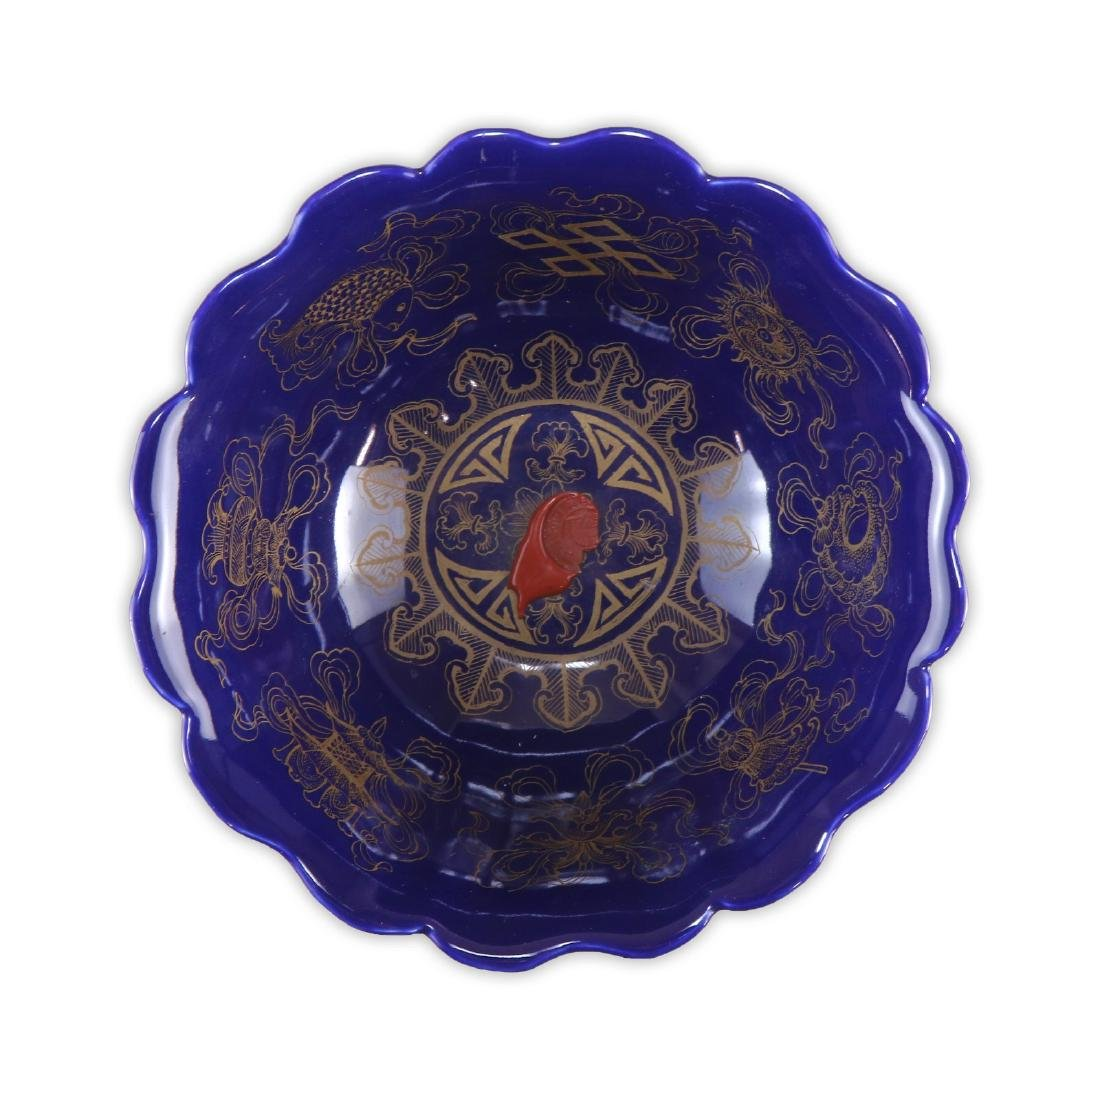 A FINE CHINESE GILT ON BLUE GLAZED PORCELAIN BOWL - 4